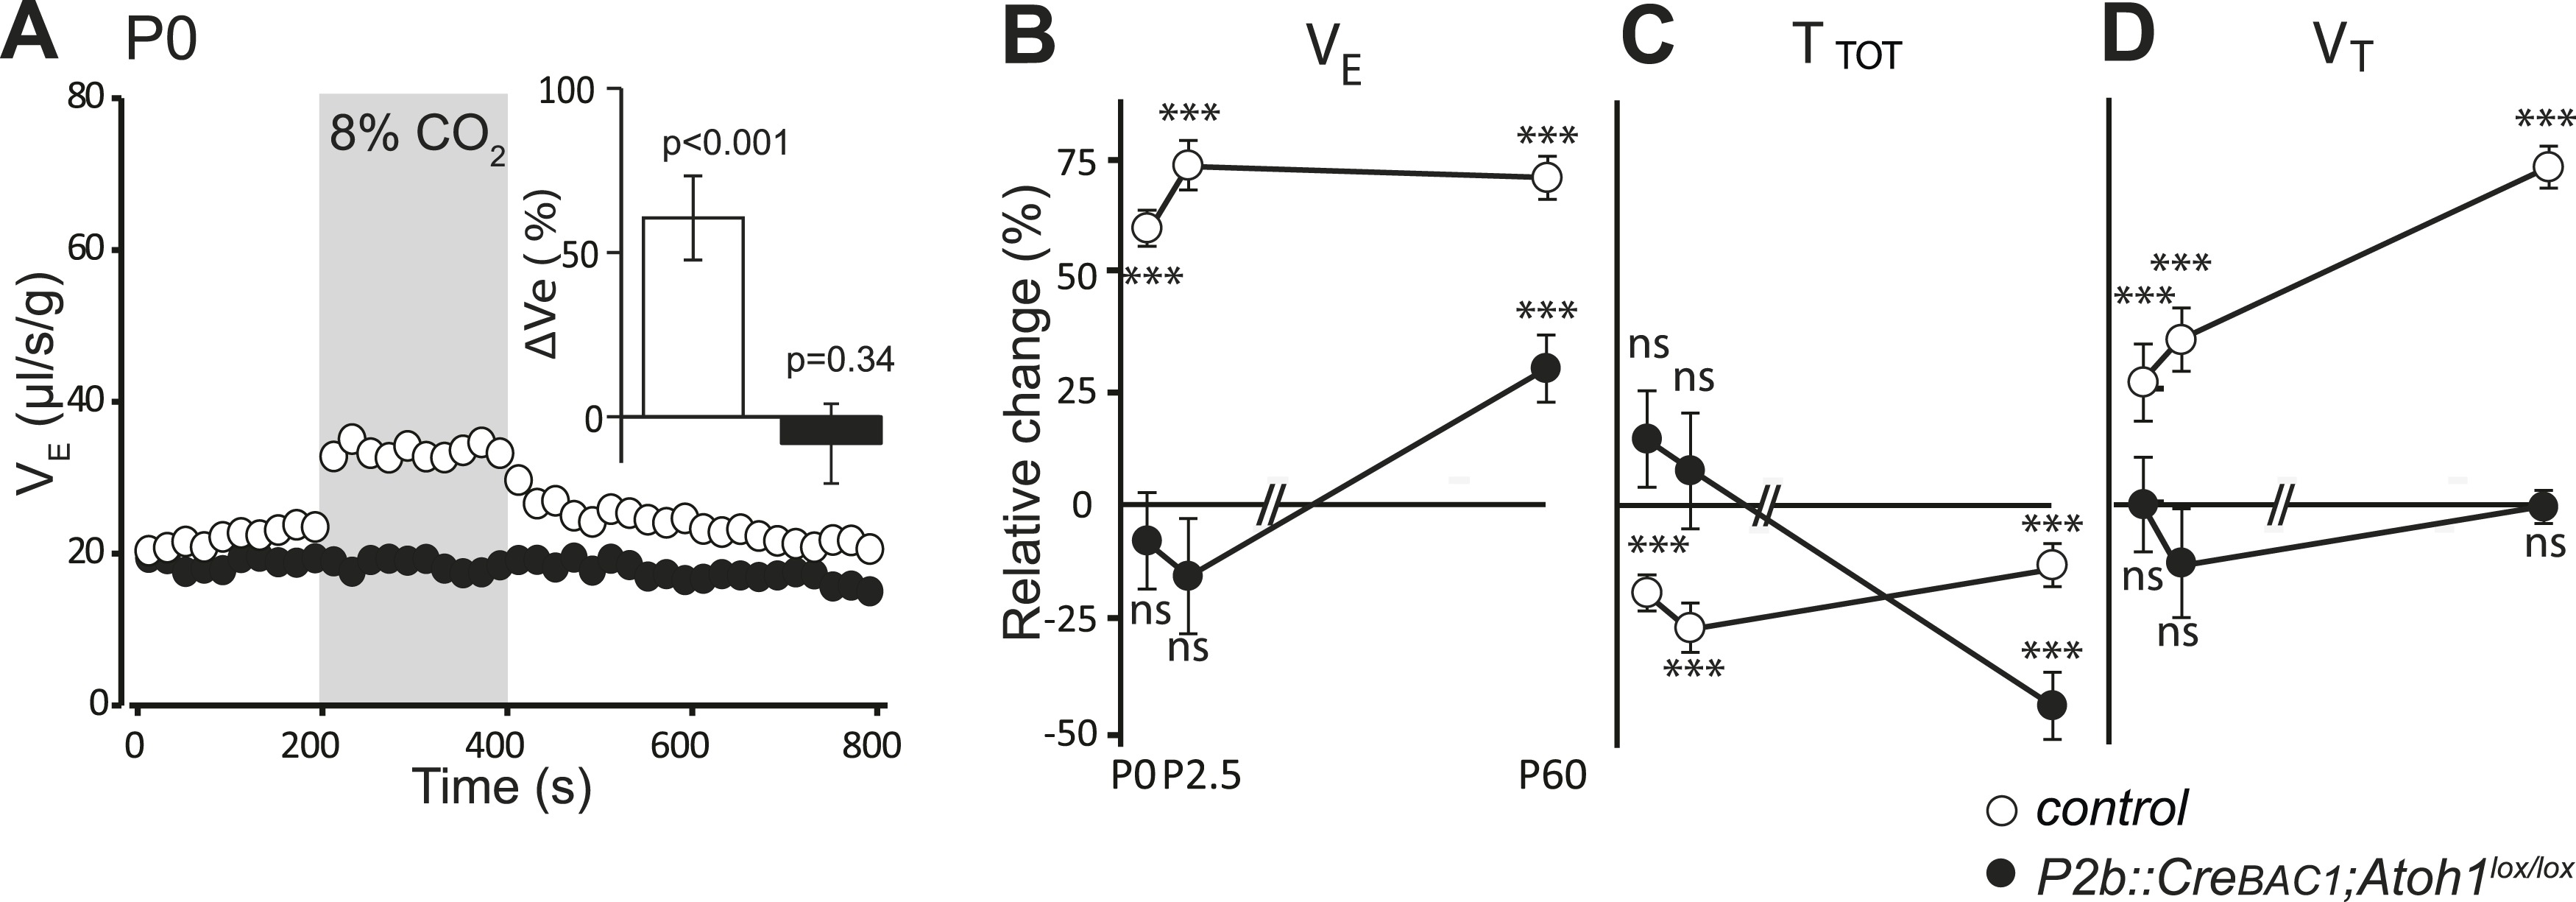 The Retrot Zoid Nucleus Neurons Expressing Atoh1 And